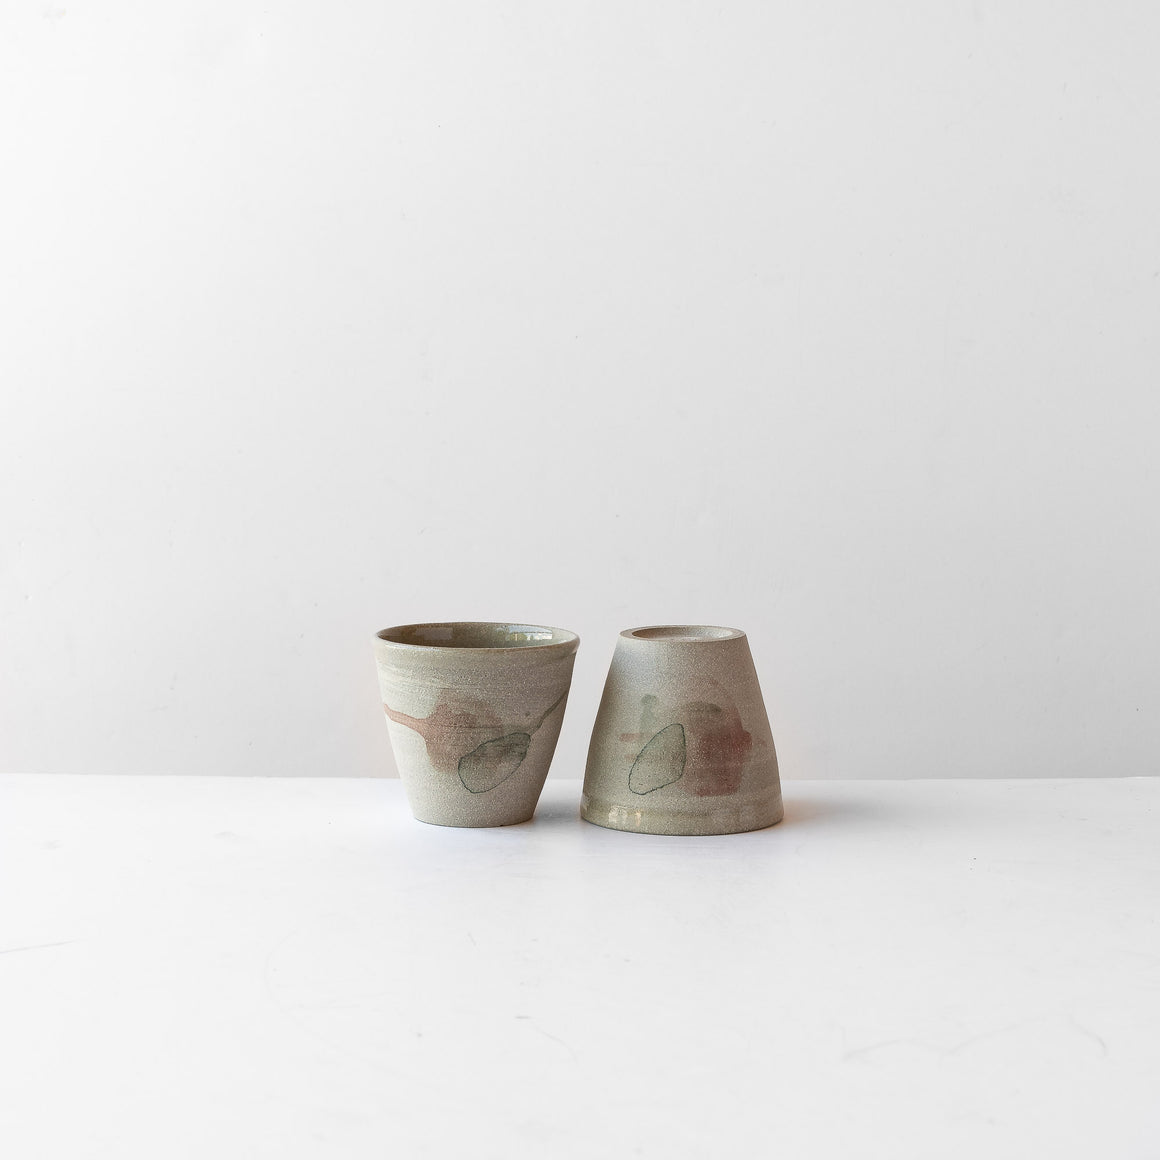 Hand Painted Stoneware Tumbler - Sold by Chic & Basta